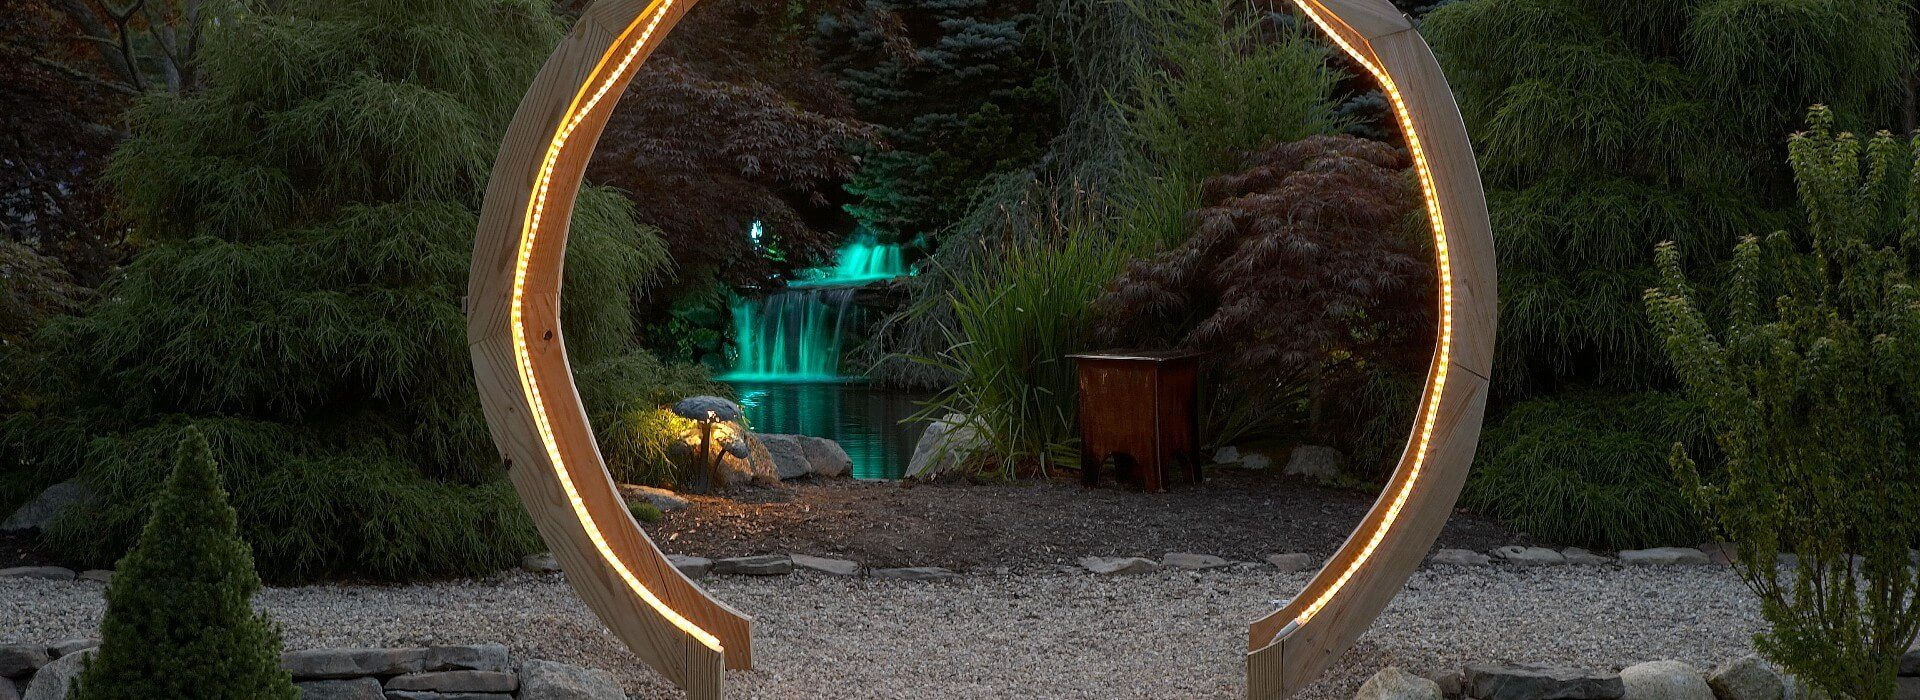 Beautiful wooden circular gate arch lit up by a rope light with view of a waterfall in the background